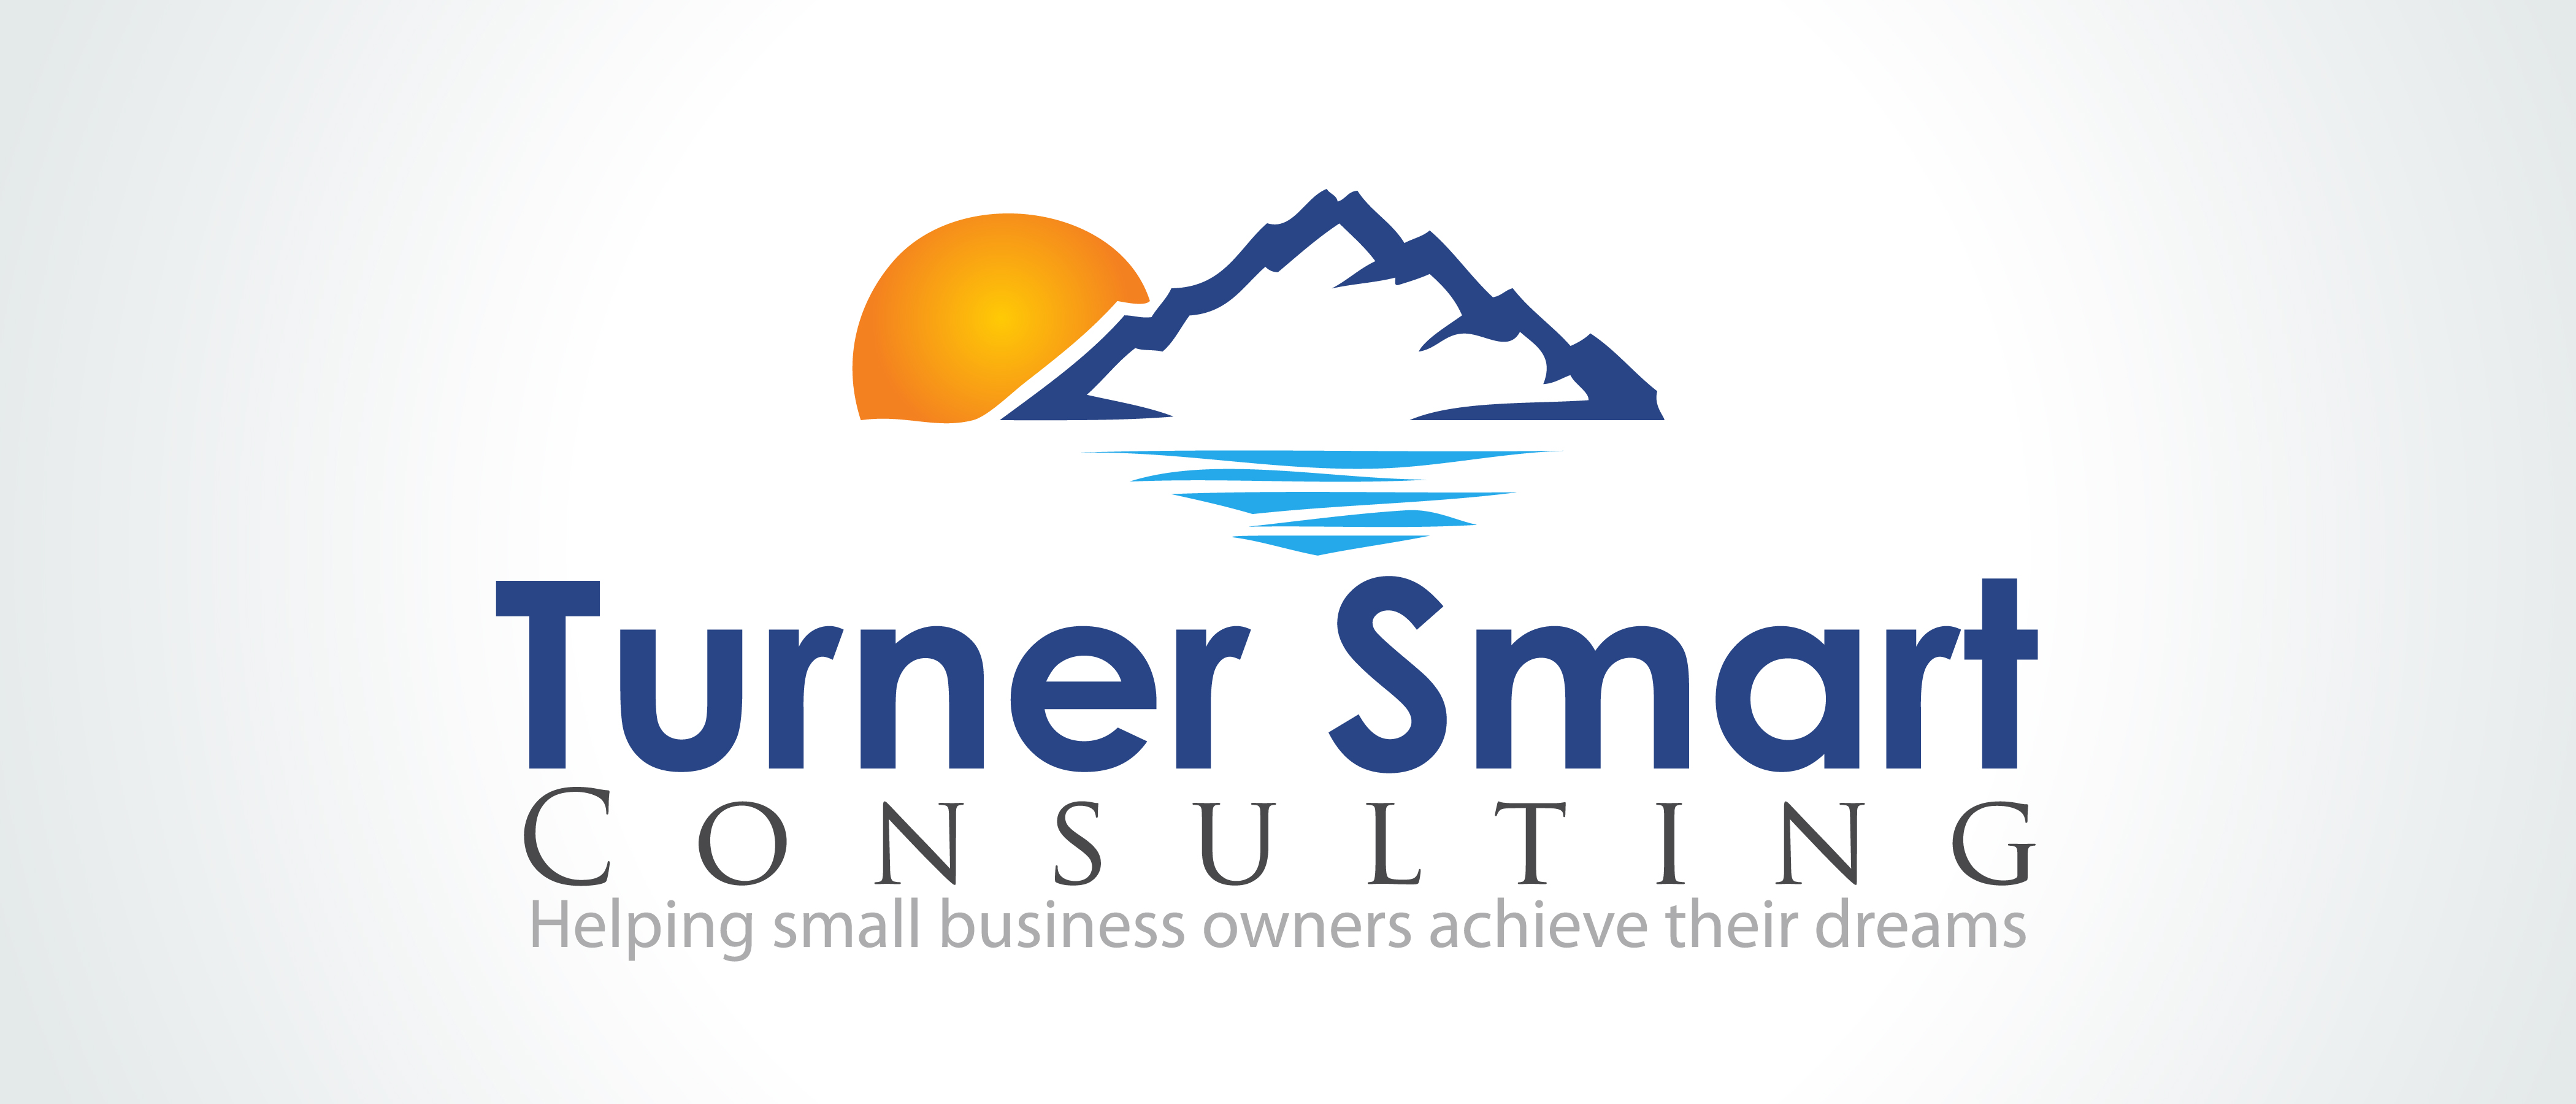 Turner Smart Consulting-logo-Fj